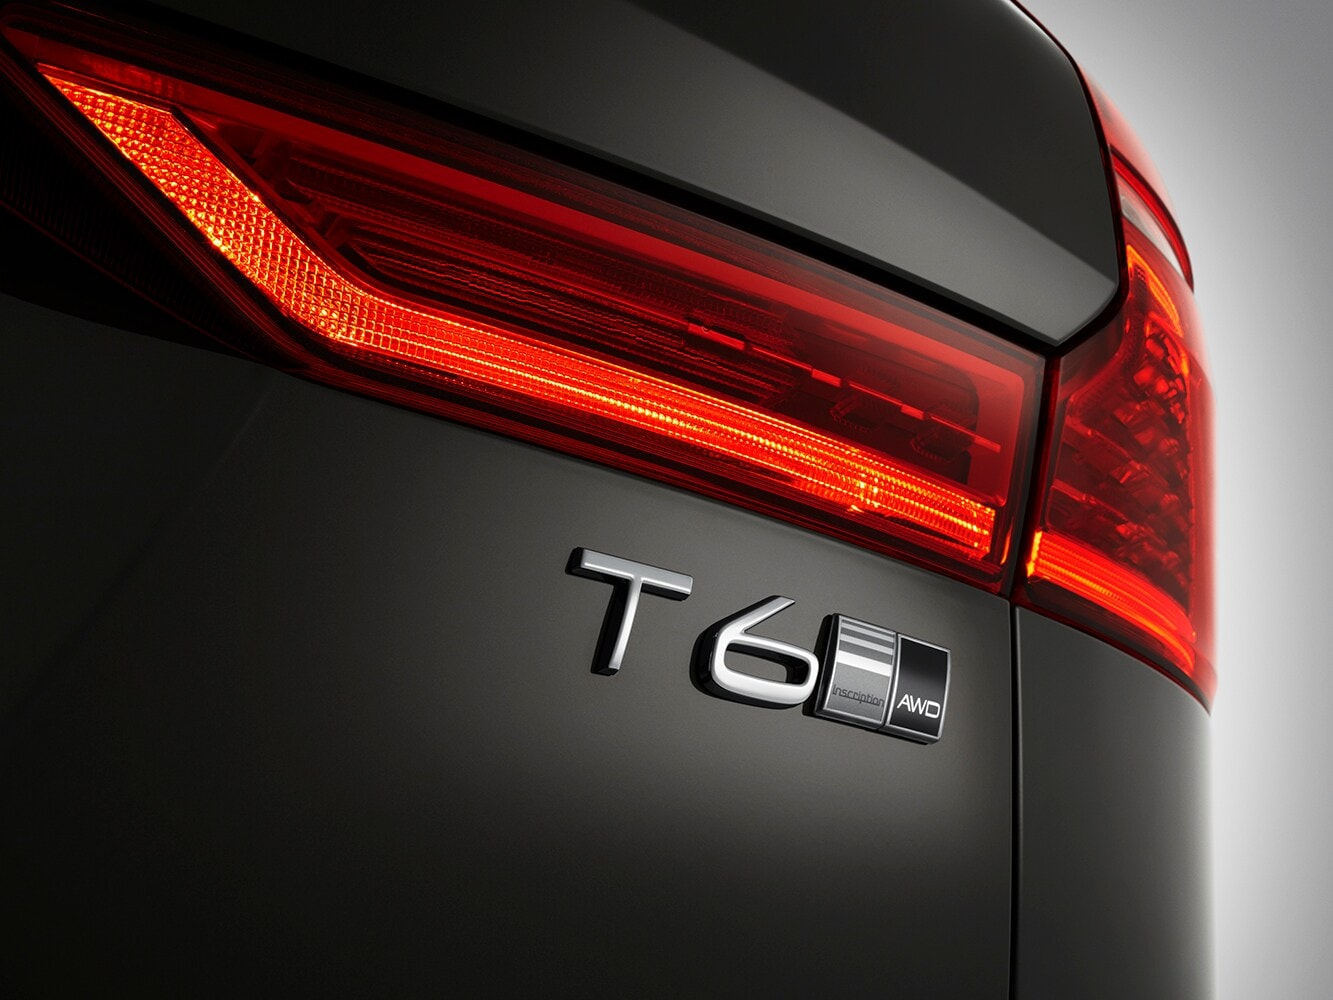 Close up of the T6 badge on a Volvo XC60